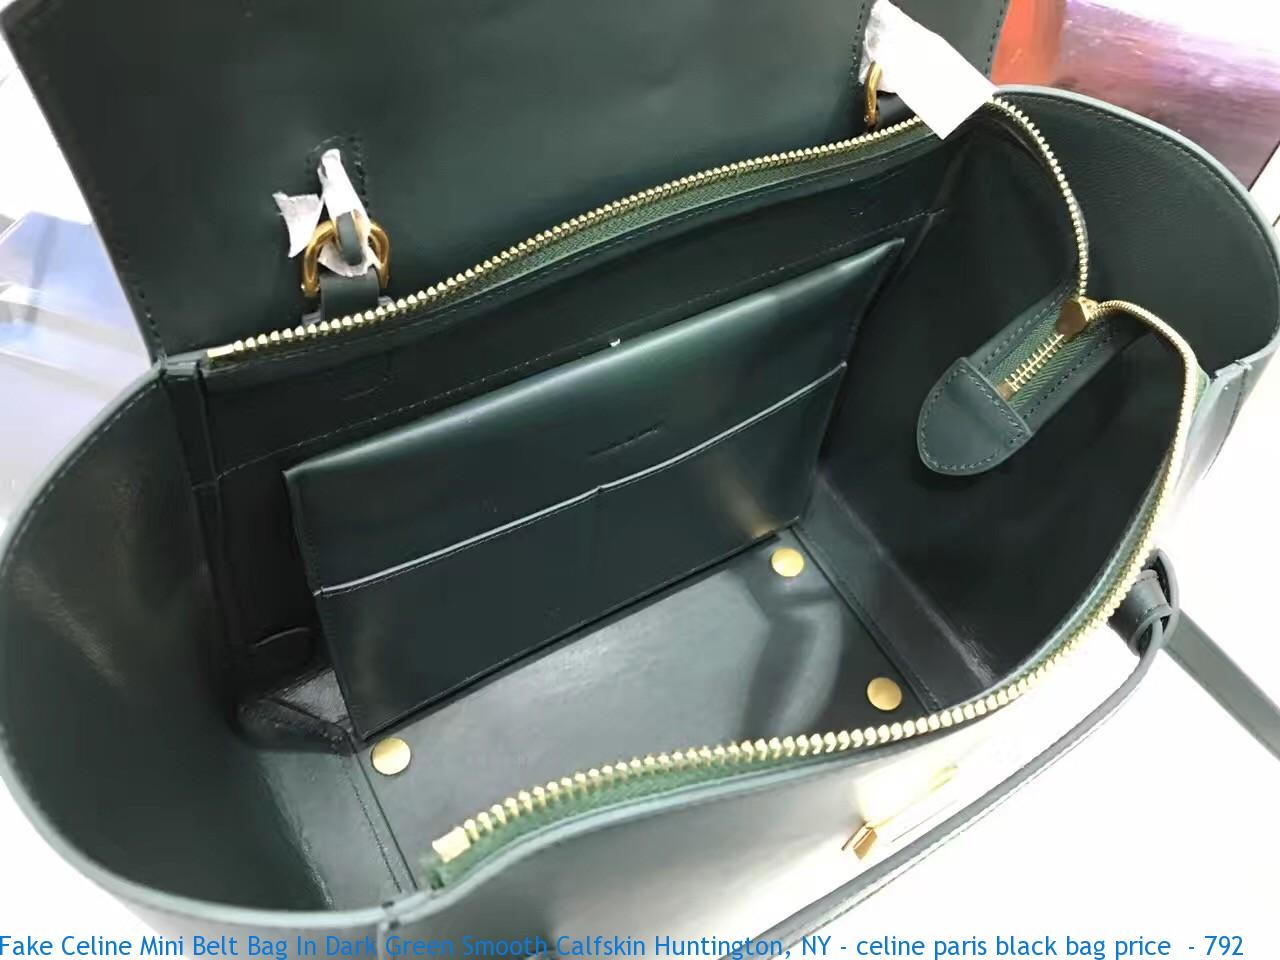 Fake Celine Mini Belt Bag In Dark Green